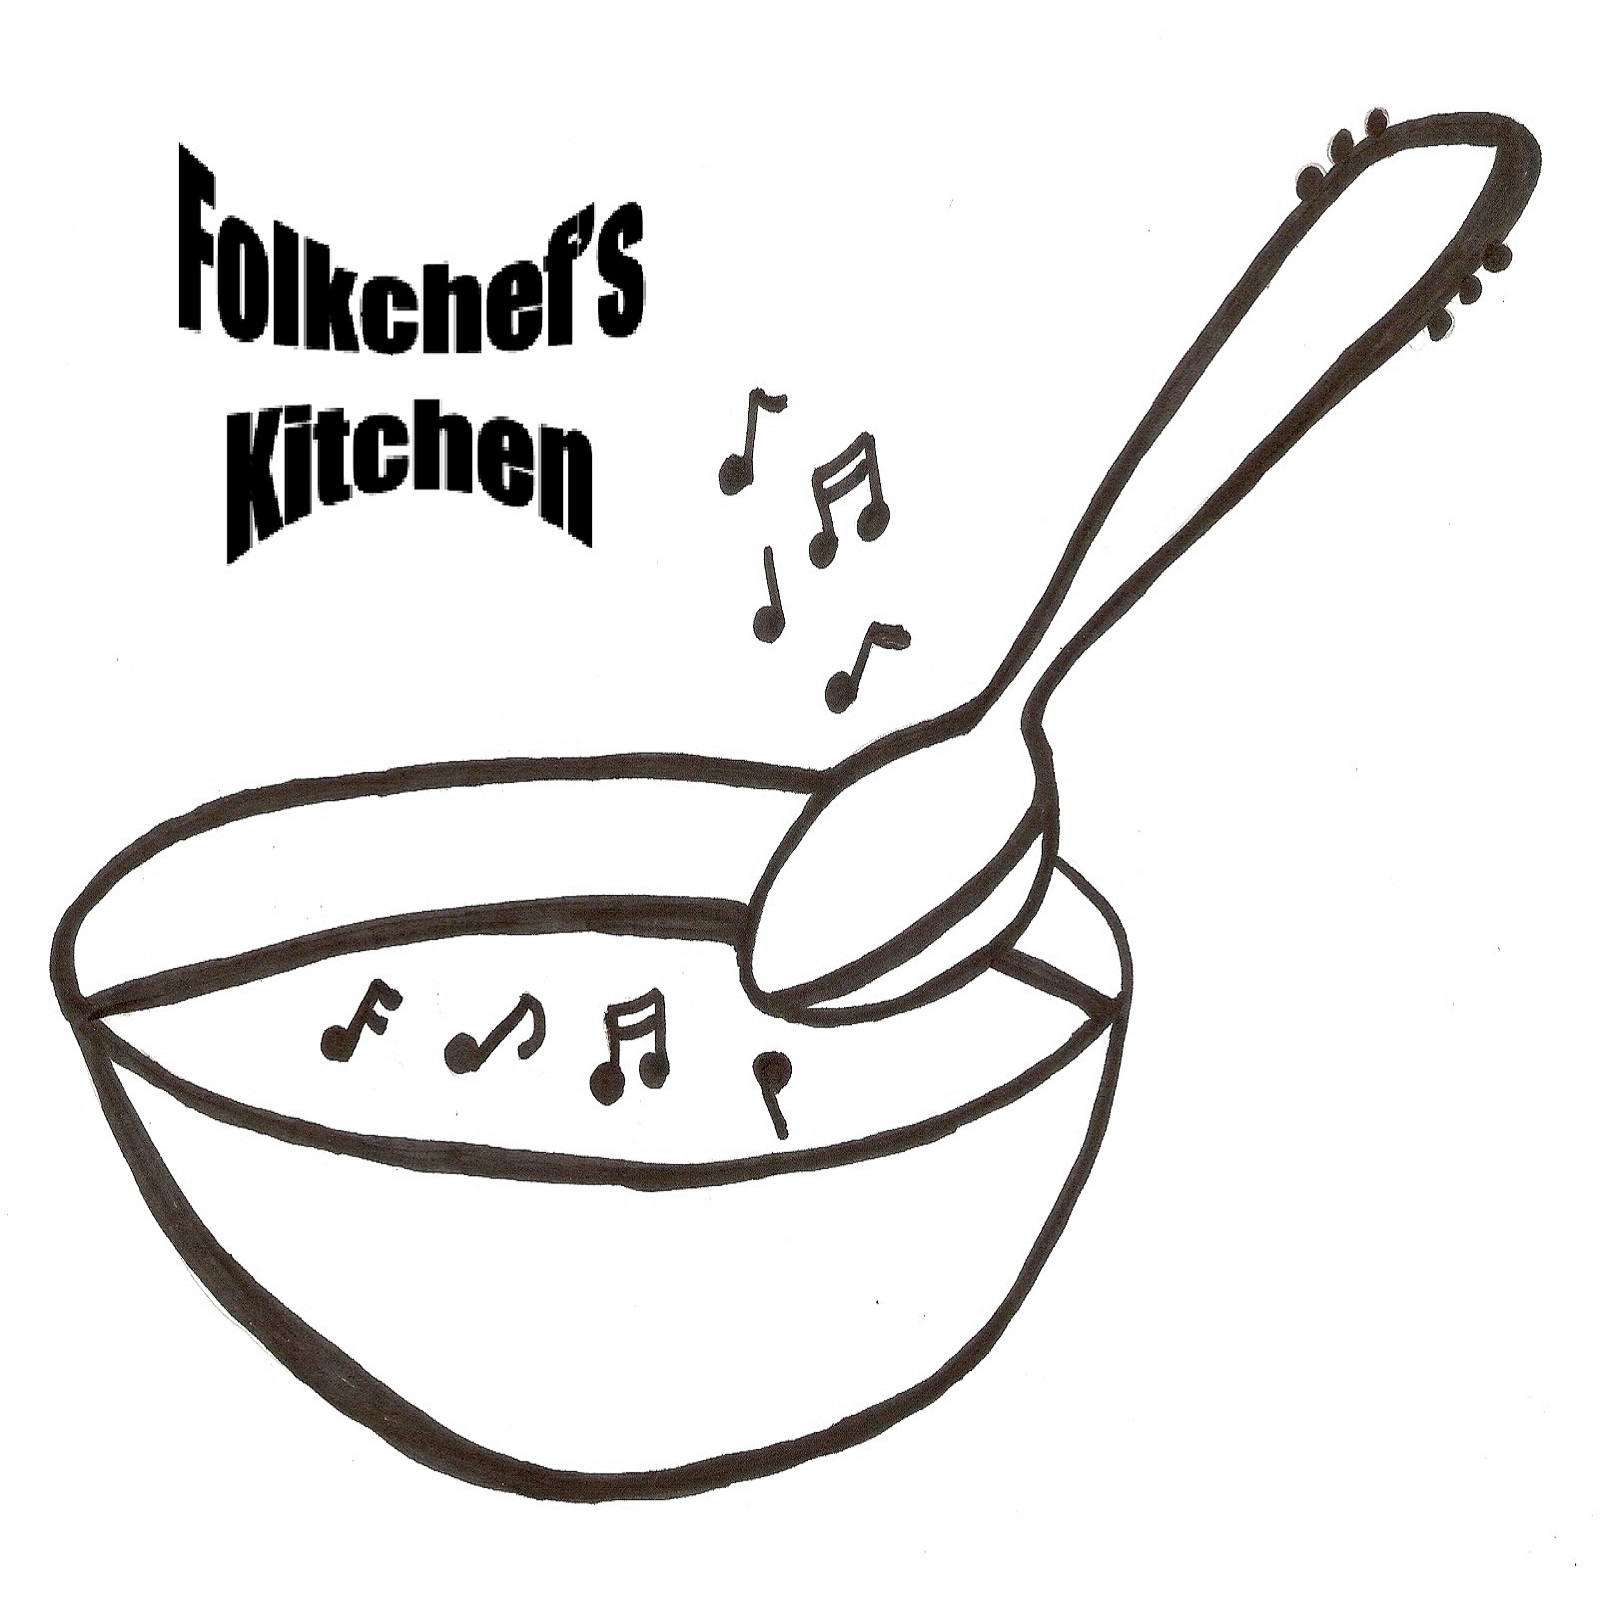 The Folkchef's Kitchen